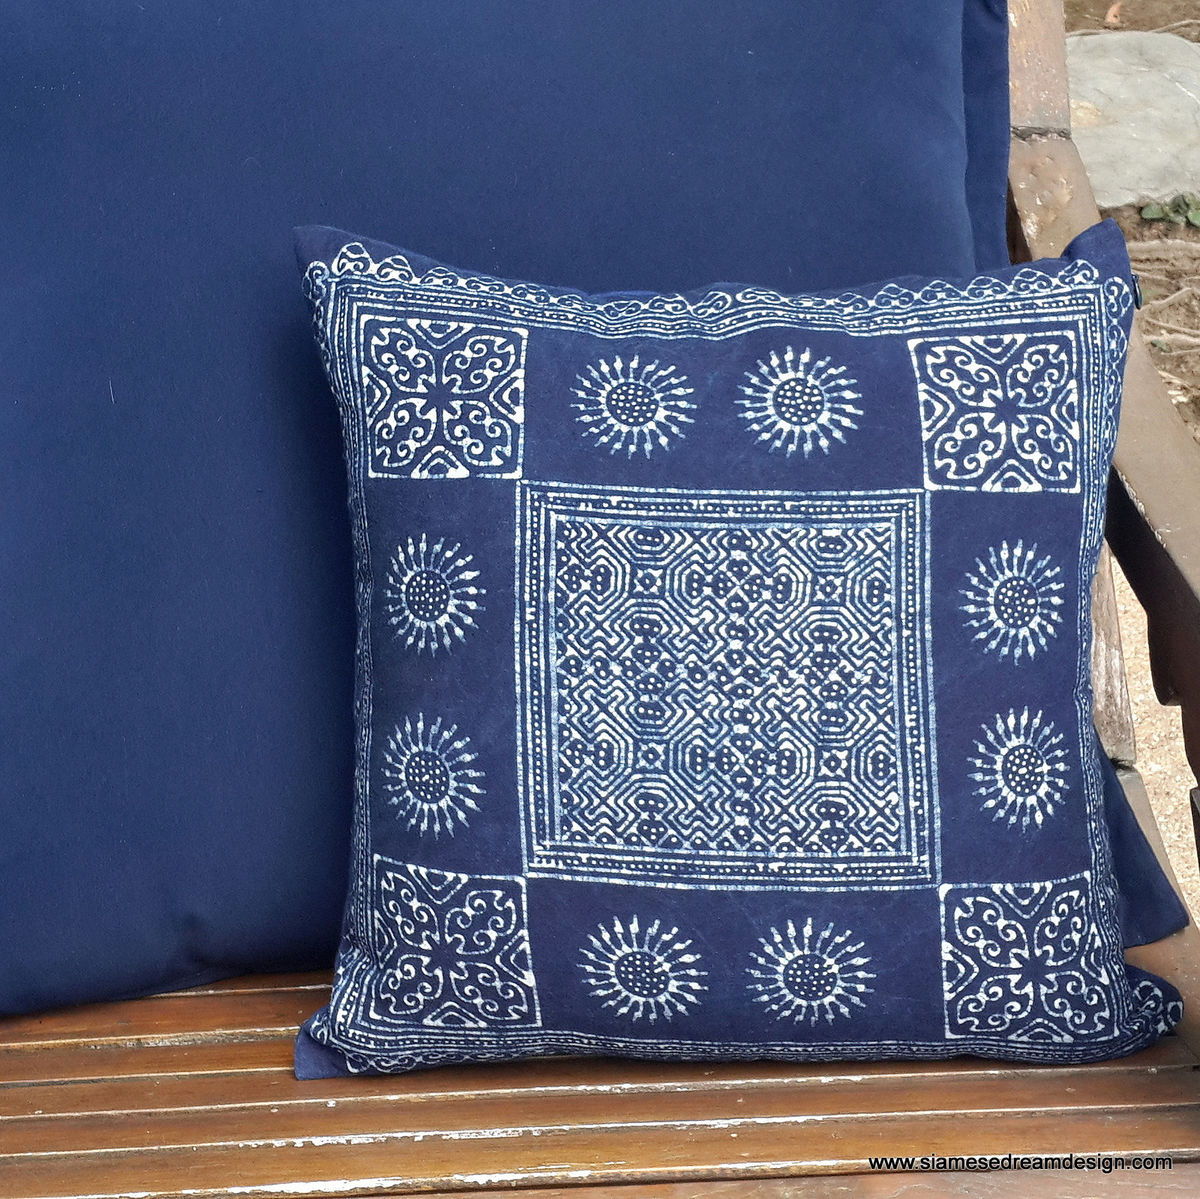 16 or 20 inch Indigo Batik Hmong Pillow / Cushion  - product images  of